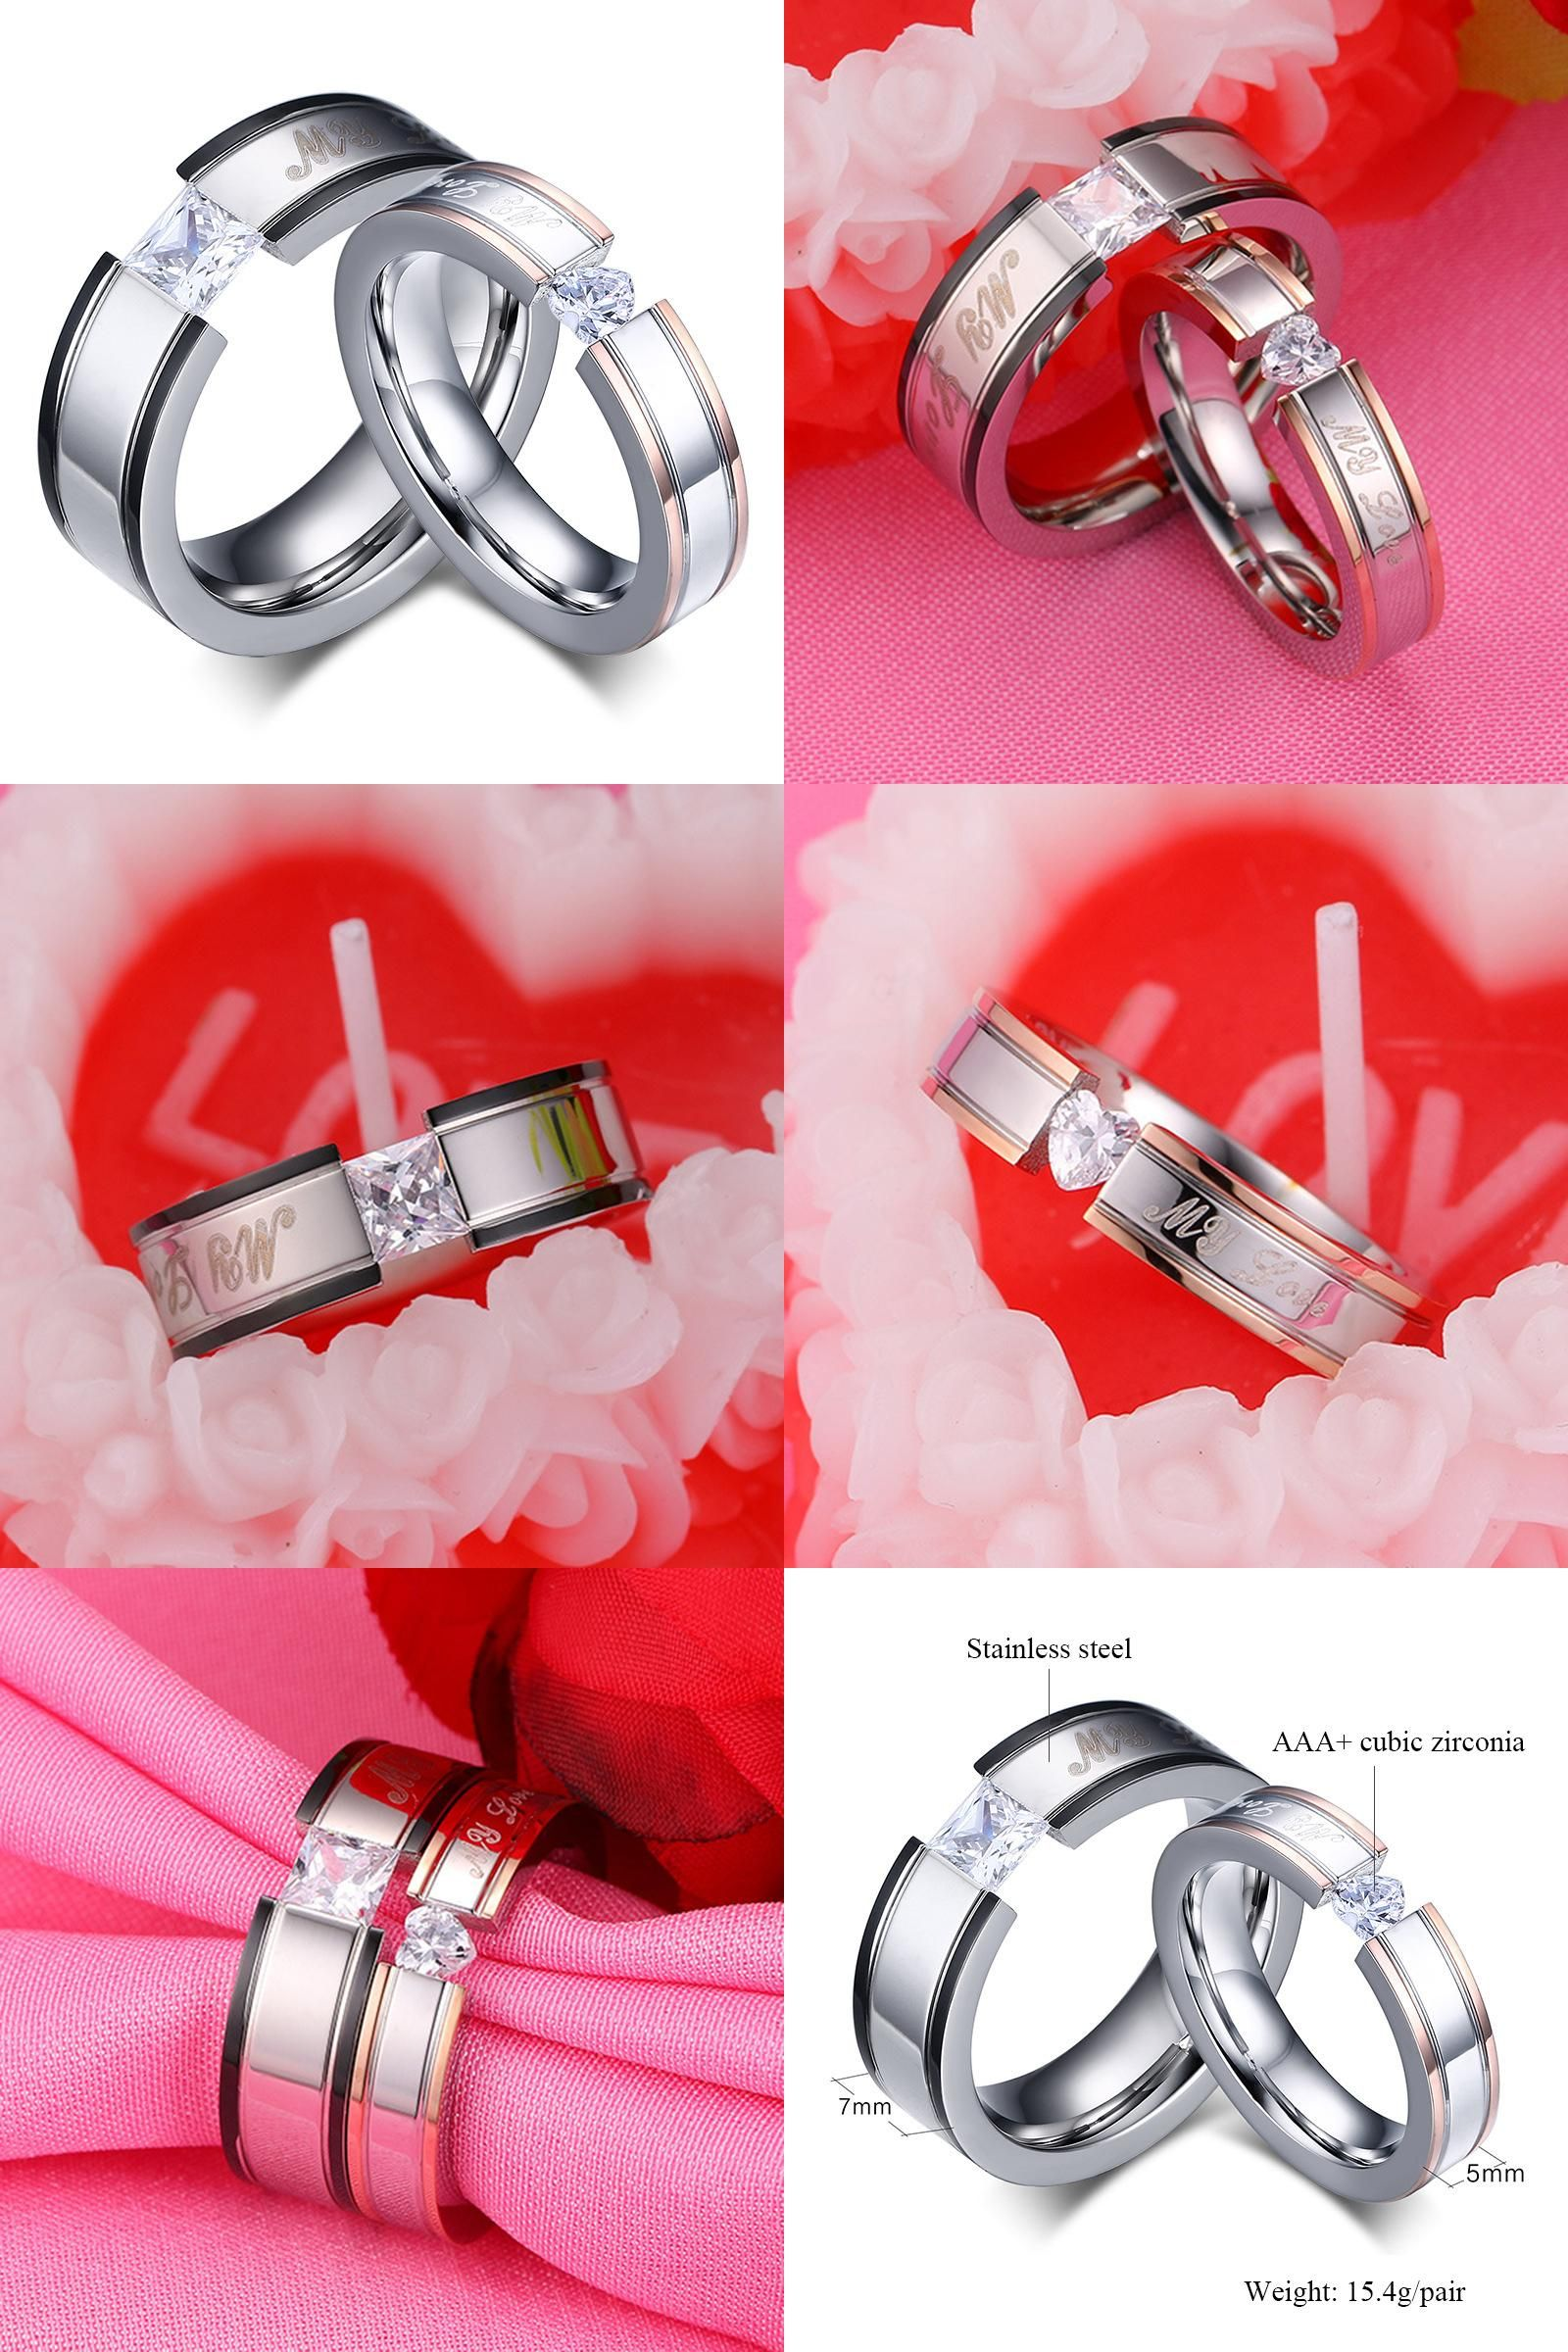 Visit to Buy] Wedding Ring for Women and Men Quality Stainless Steel ...